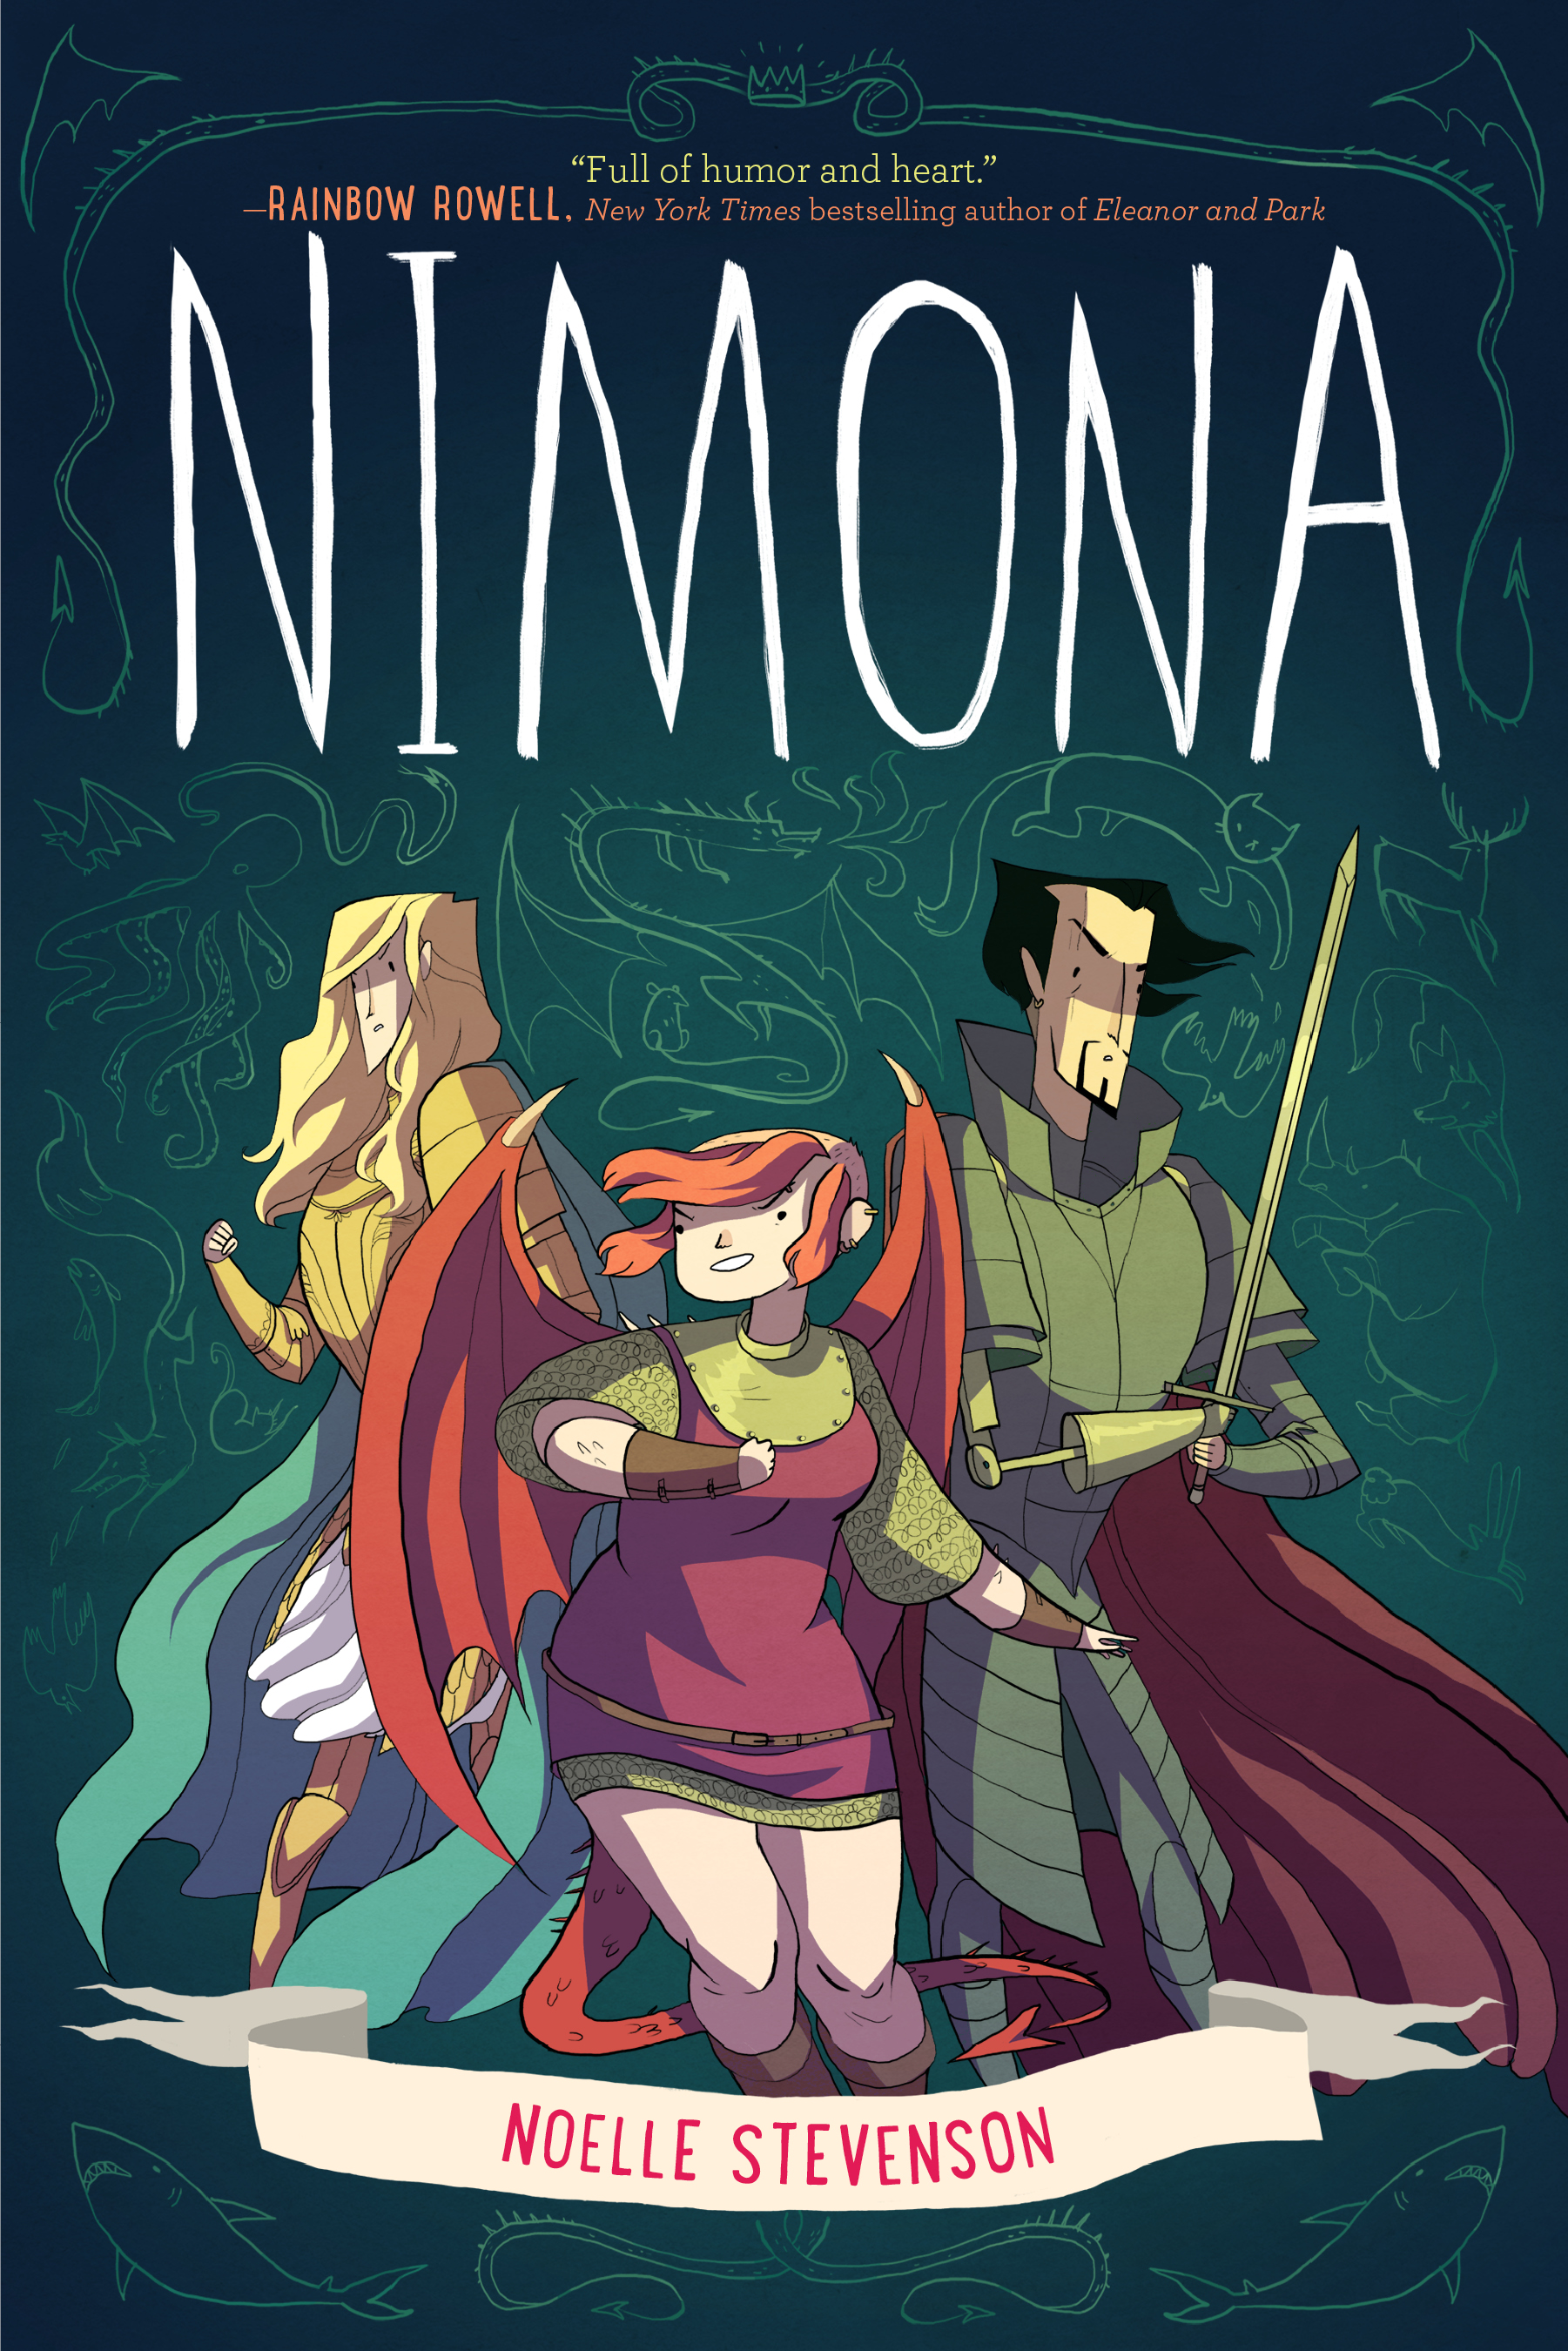 Graphic Novel Book Cover : Using graphic novels in education nimona comic book